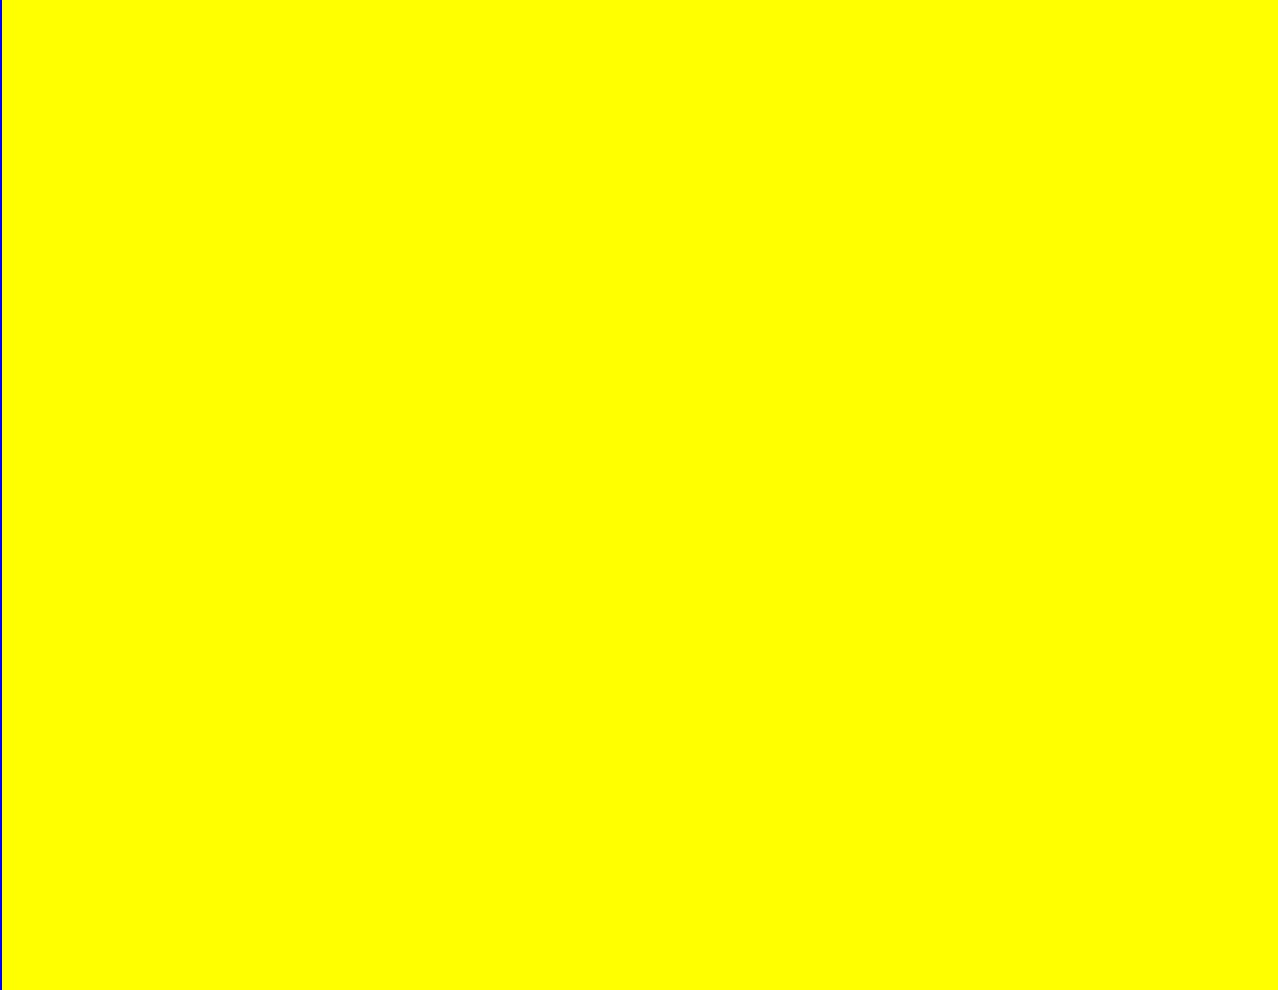 Pure Yellow Test Screen